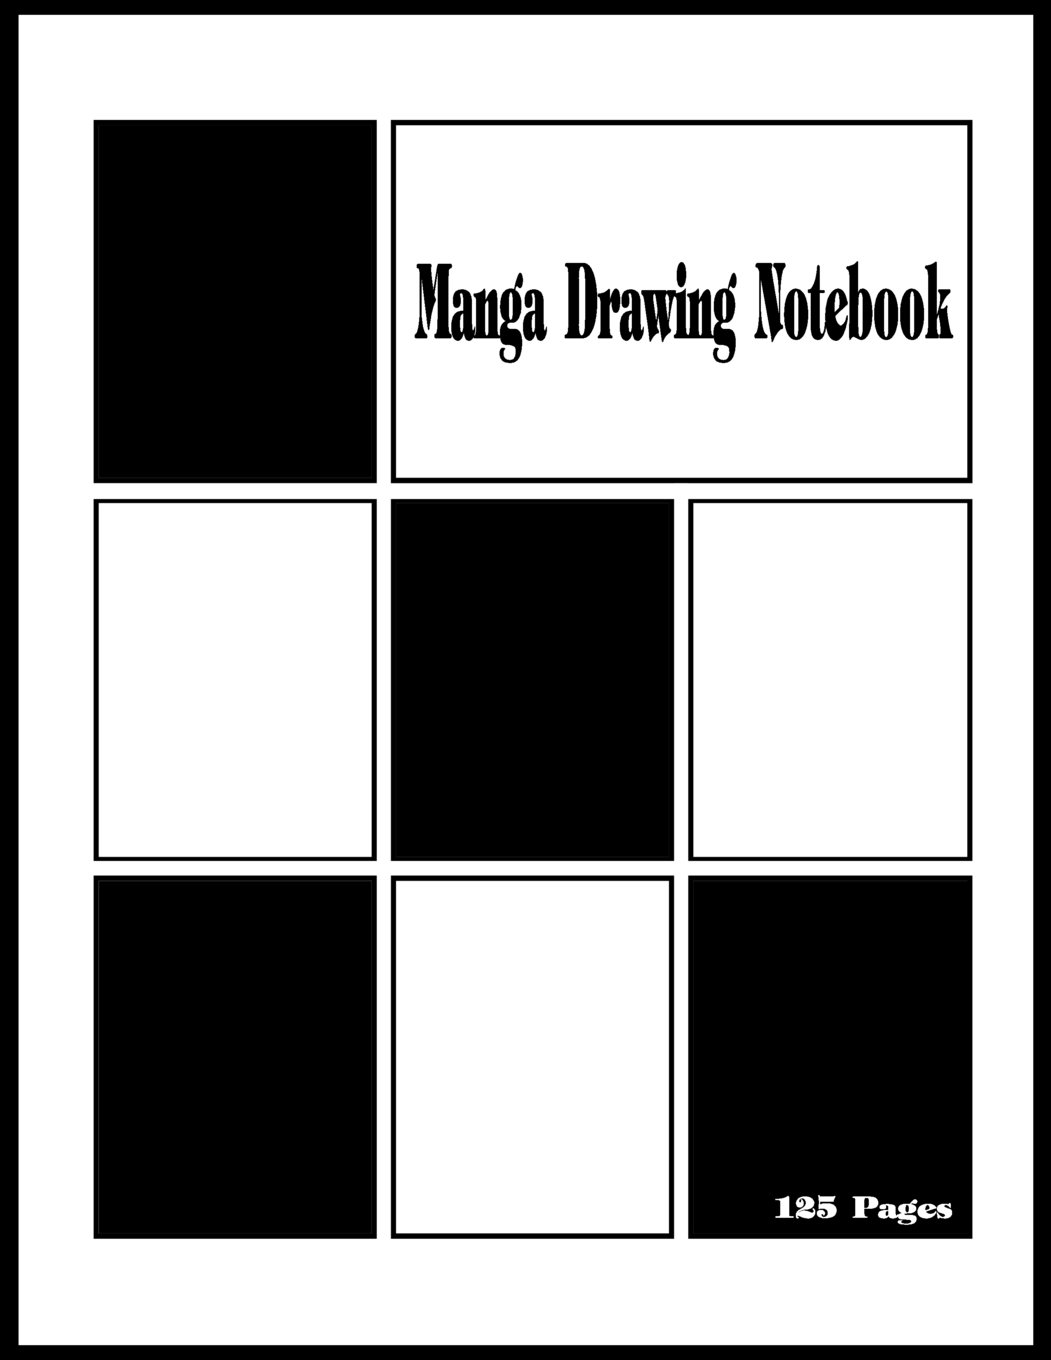 Manga Drawing Notebook: Manga Comic Blank Variety of Templates for Comics Strip,Drawing Anime Manga and Cartoon for artists of all levels